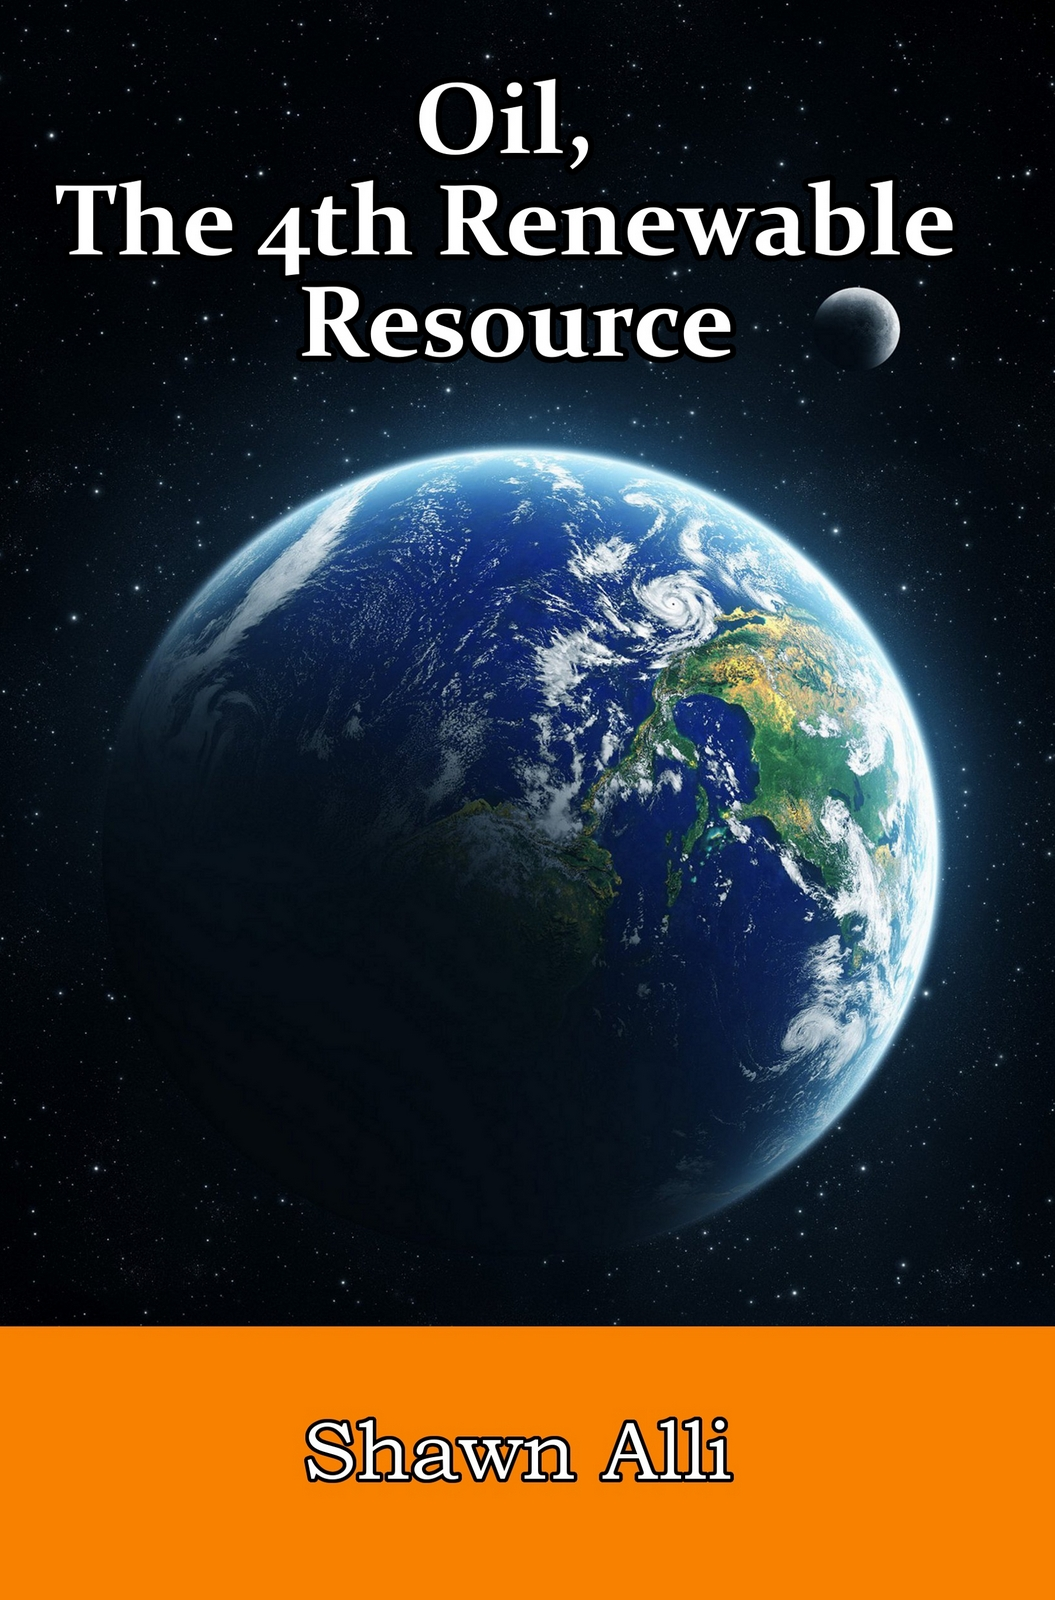 Oil, The 4th Renewable Resource By: Shawn Alli